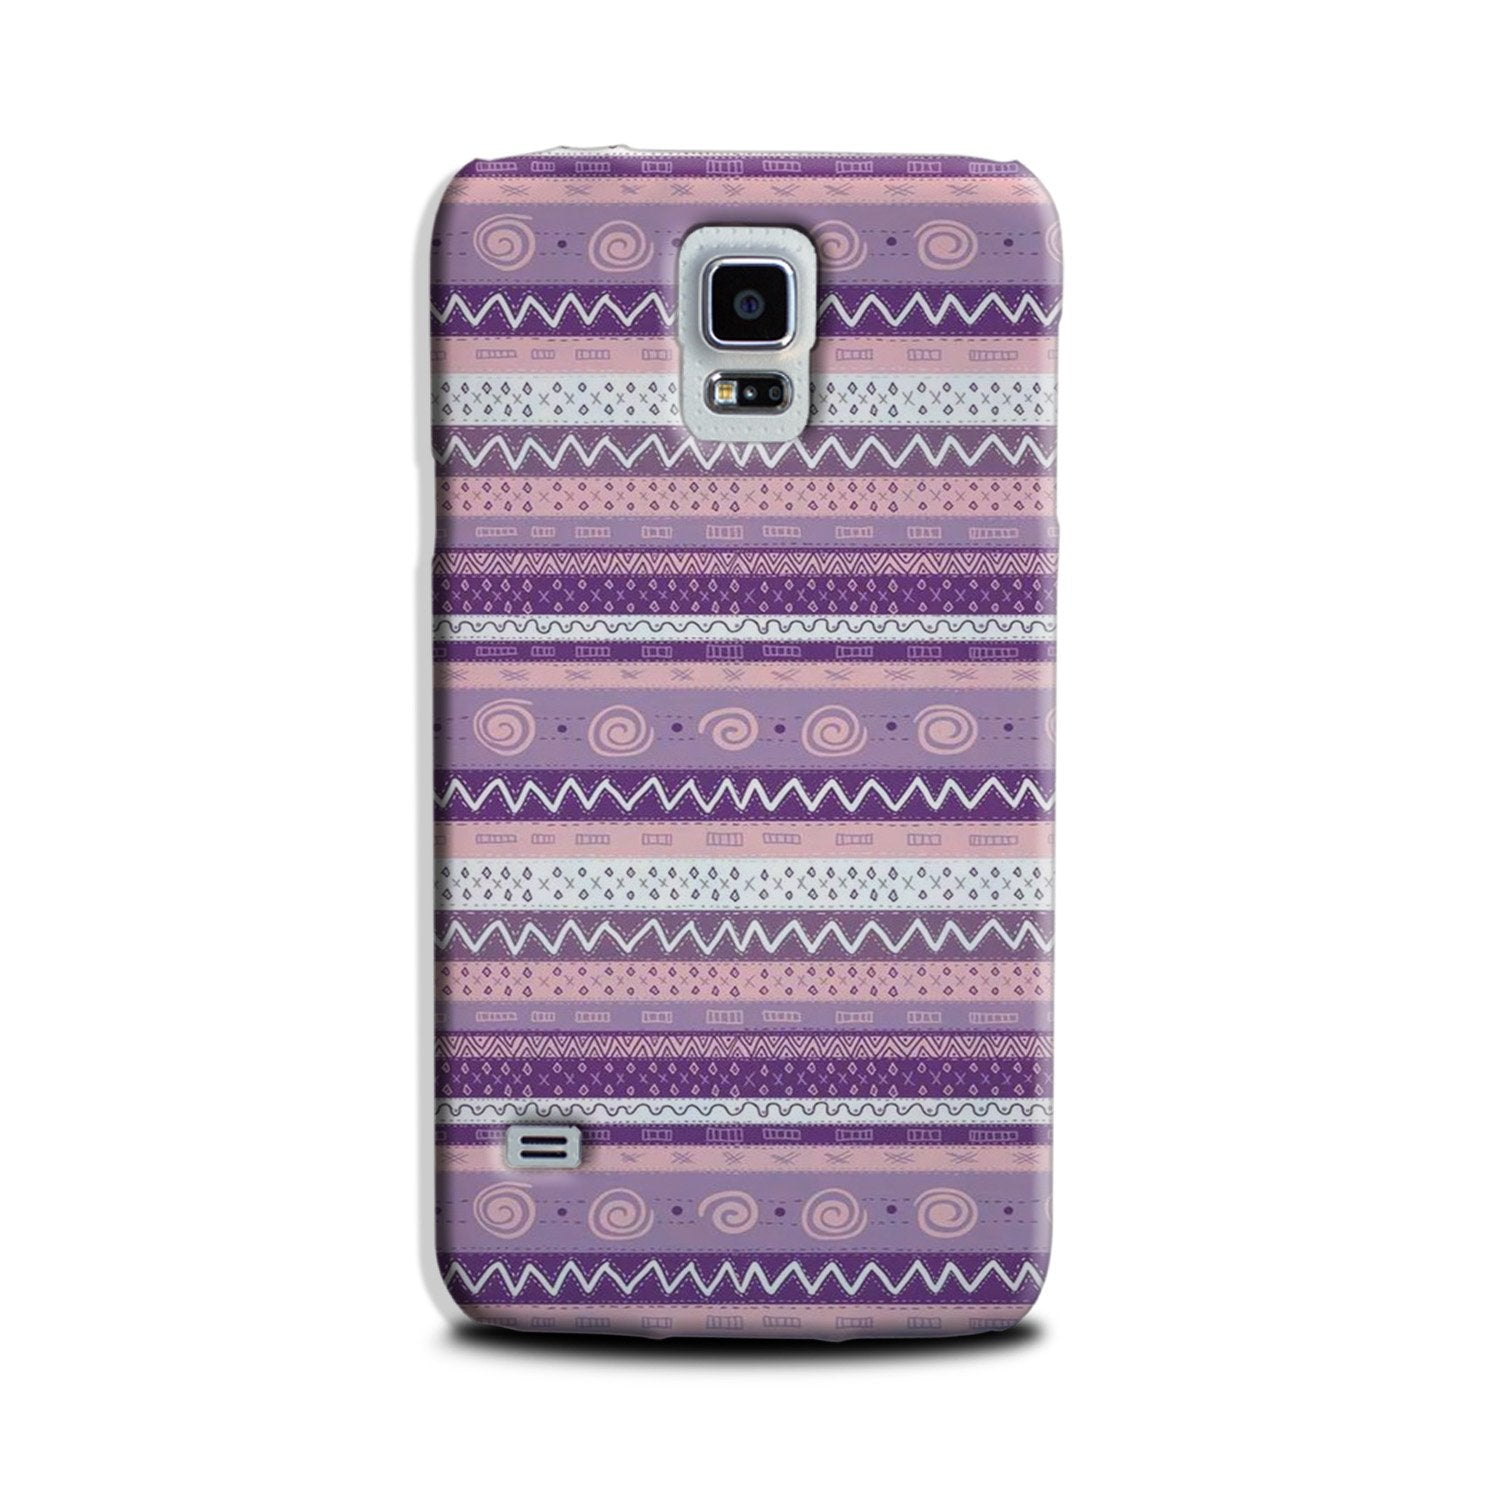 Zigzag line pattern3 Case for Galaxy S5